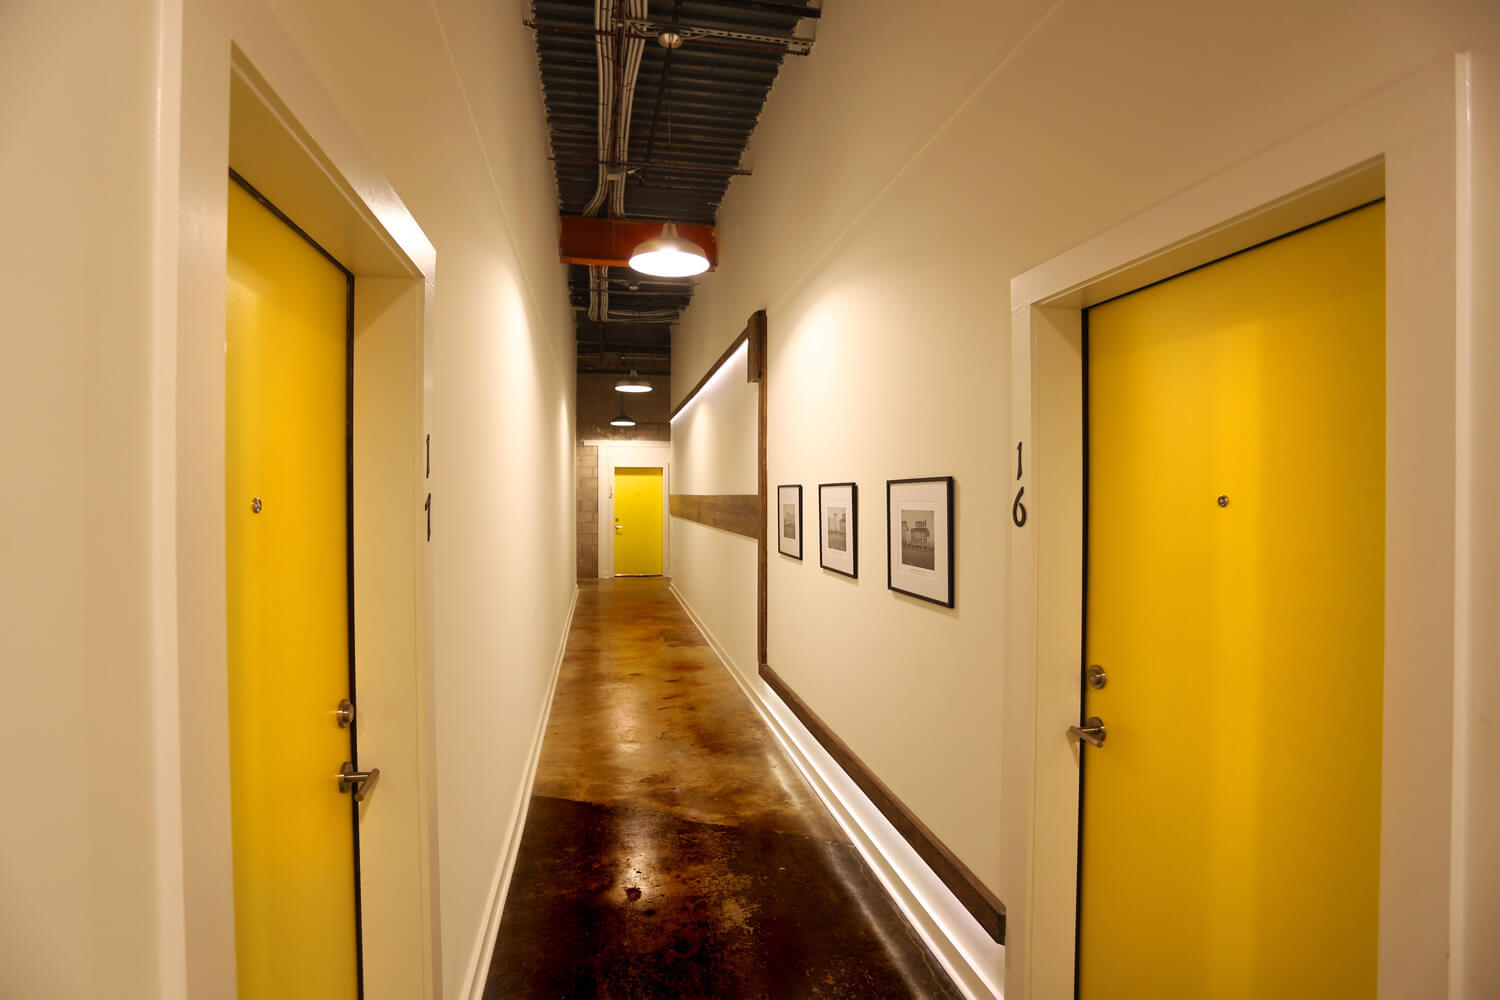 District 36 Lofts Designed by Foshee Architecture - View of Interior Hallway for Apartments